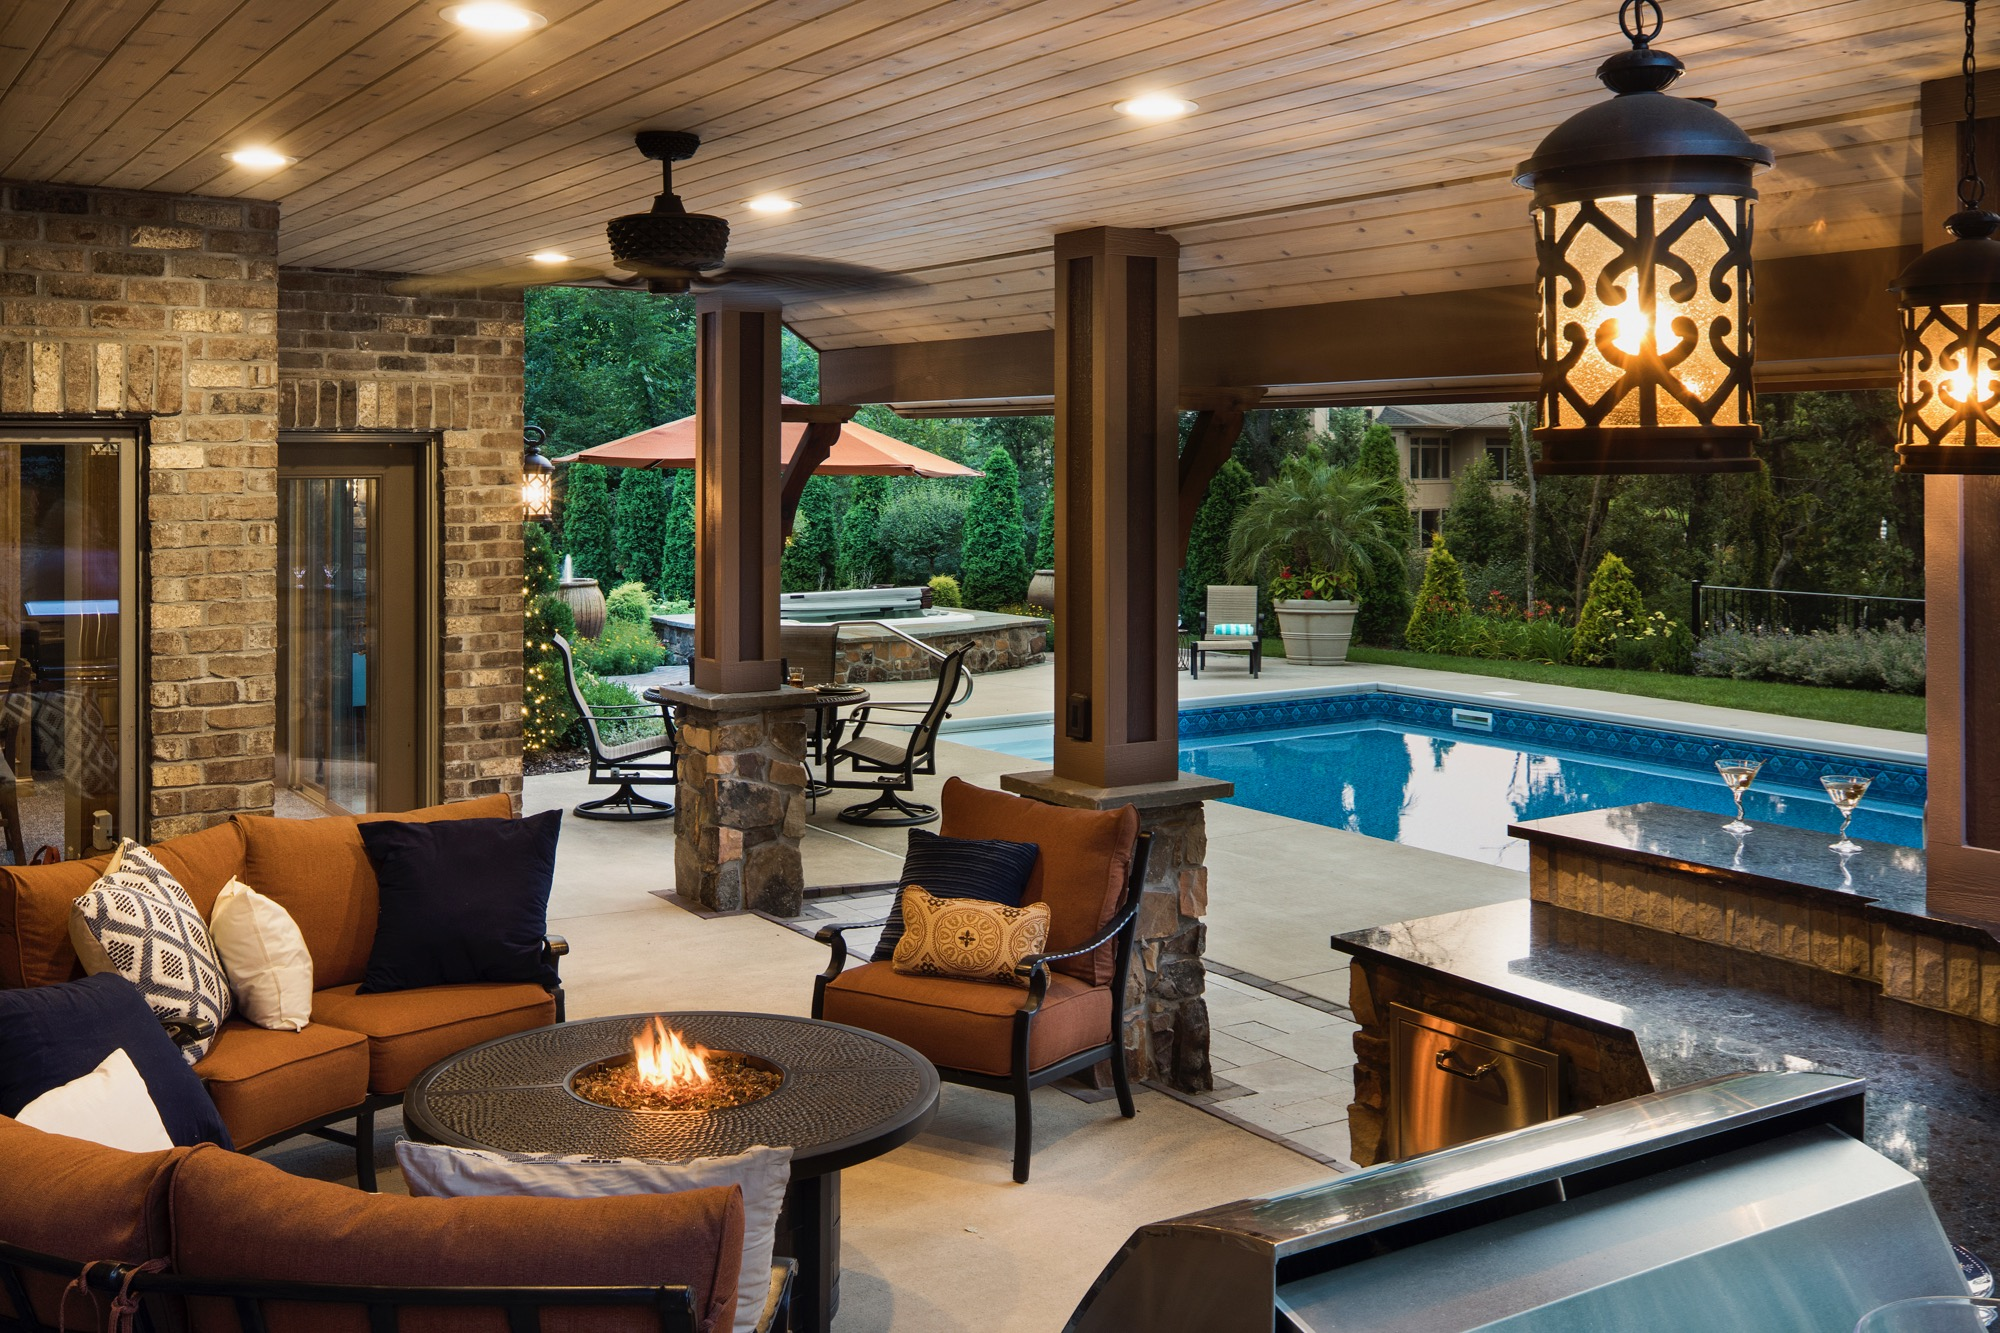 Poolside bar creates an enchanting outdoor living space.